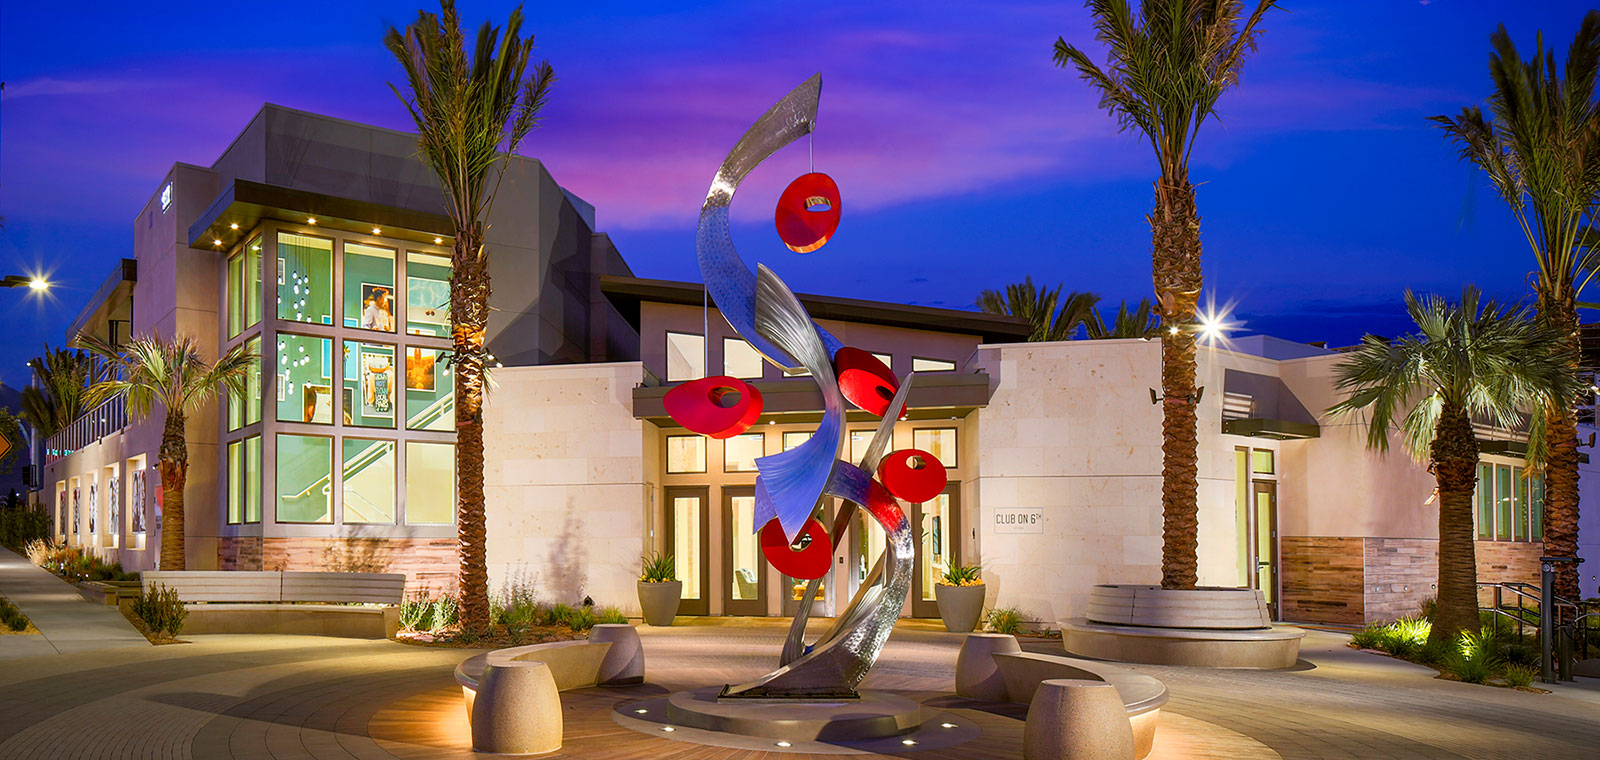 Front at dusk | The Resort | New Homes in Rancho Cucamonga, CA